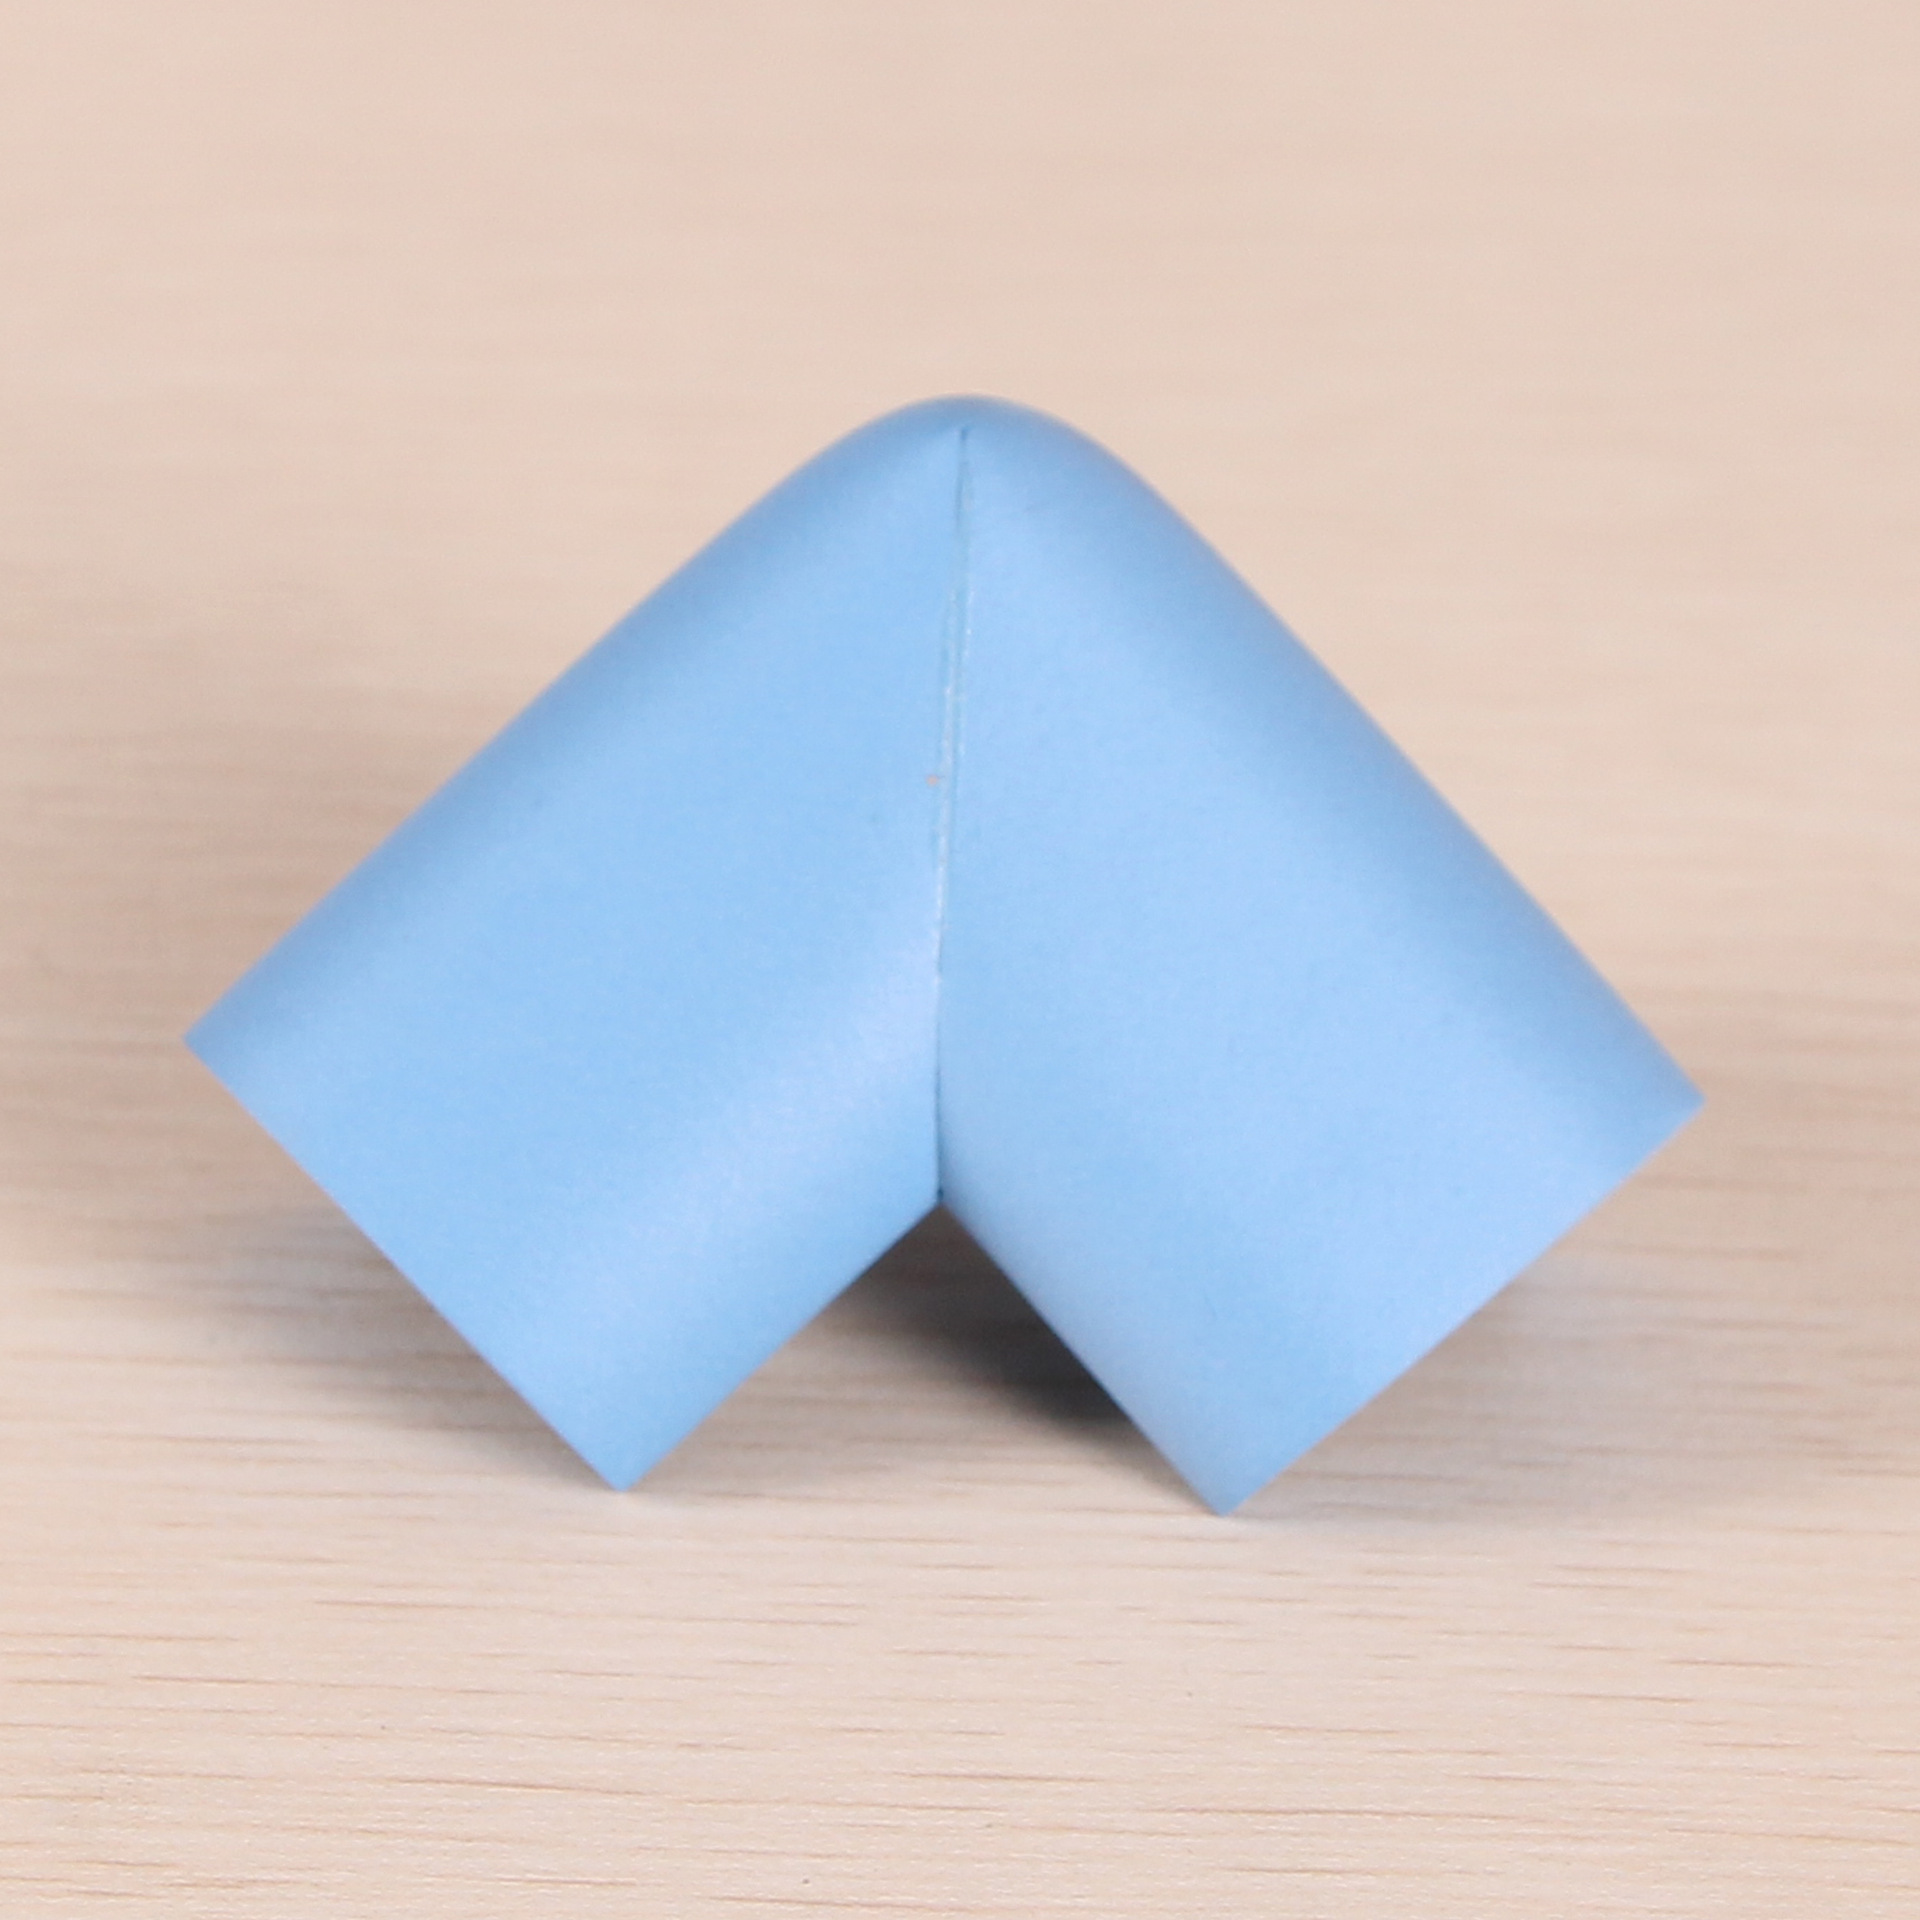 4Pcs Foam Baby Safety Corner Table Protector Soft Edge Corner Guards Child Safety Security Safe Proof Cushion Guards Protector in Edge Corner Guards from Mother Kids